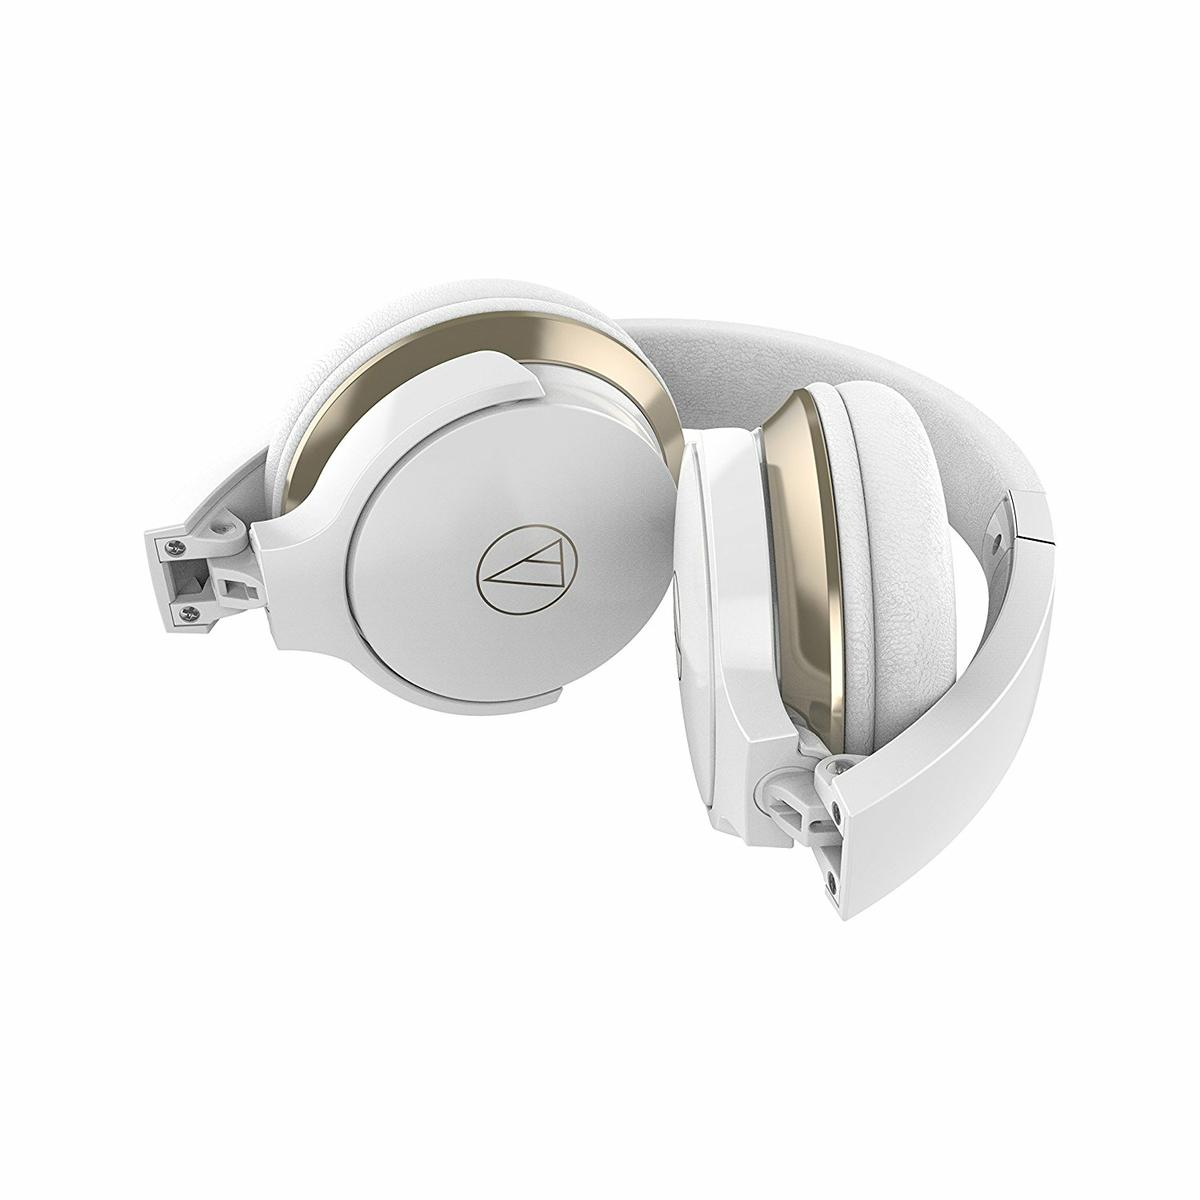 Audio-Technica ATH-AR3BT, plegables